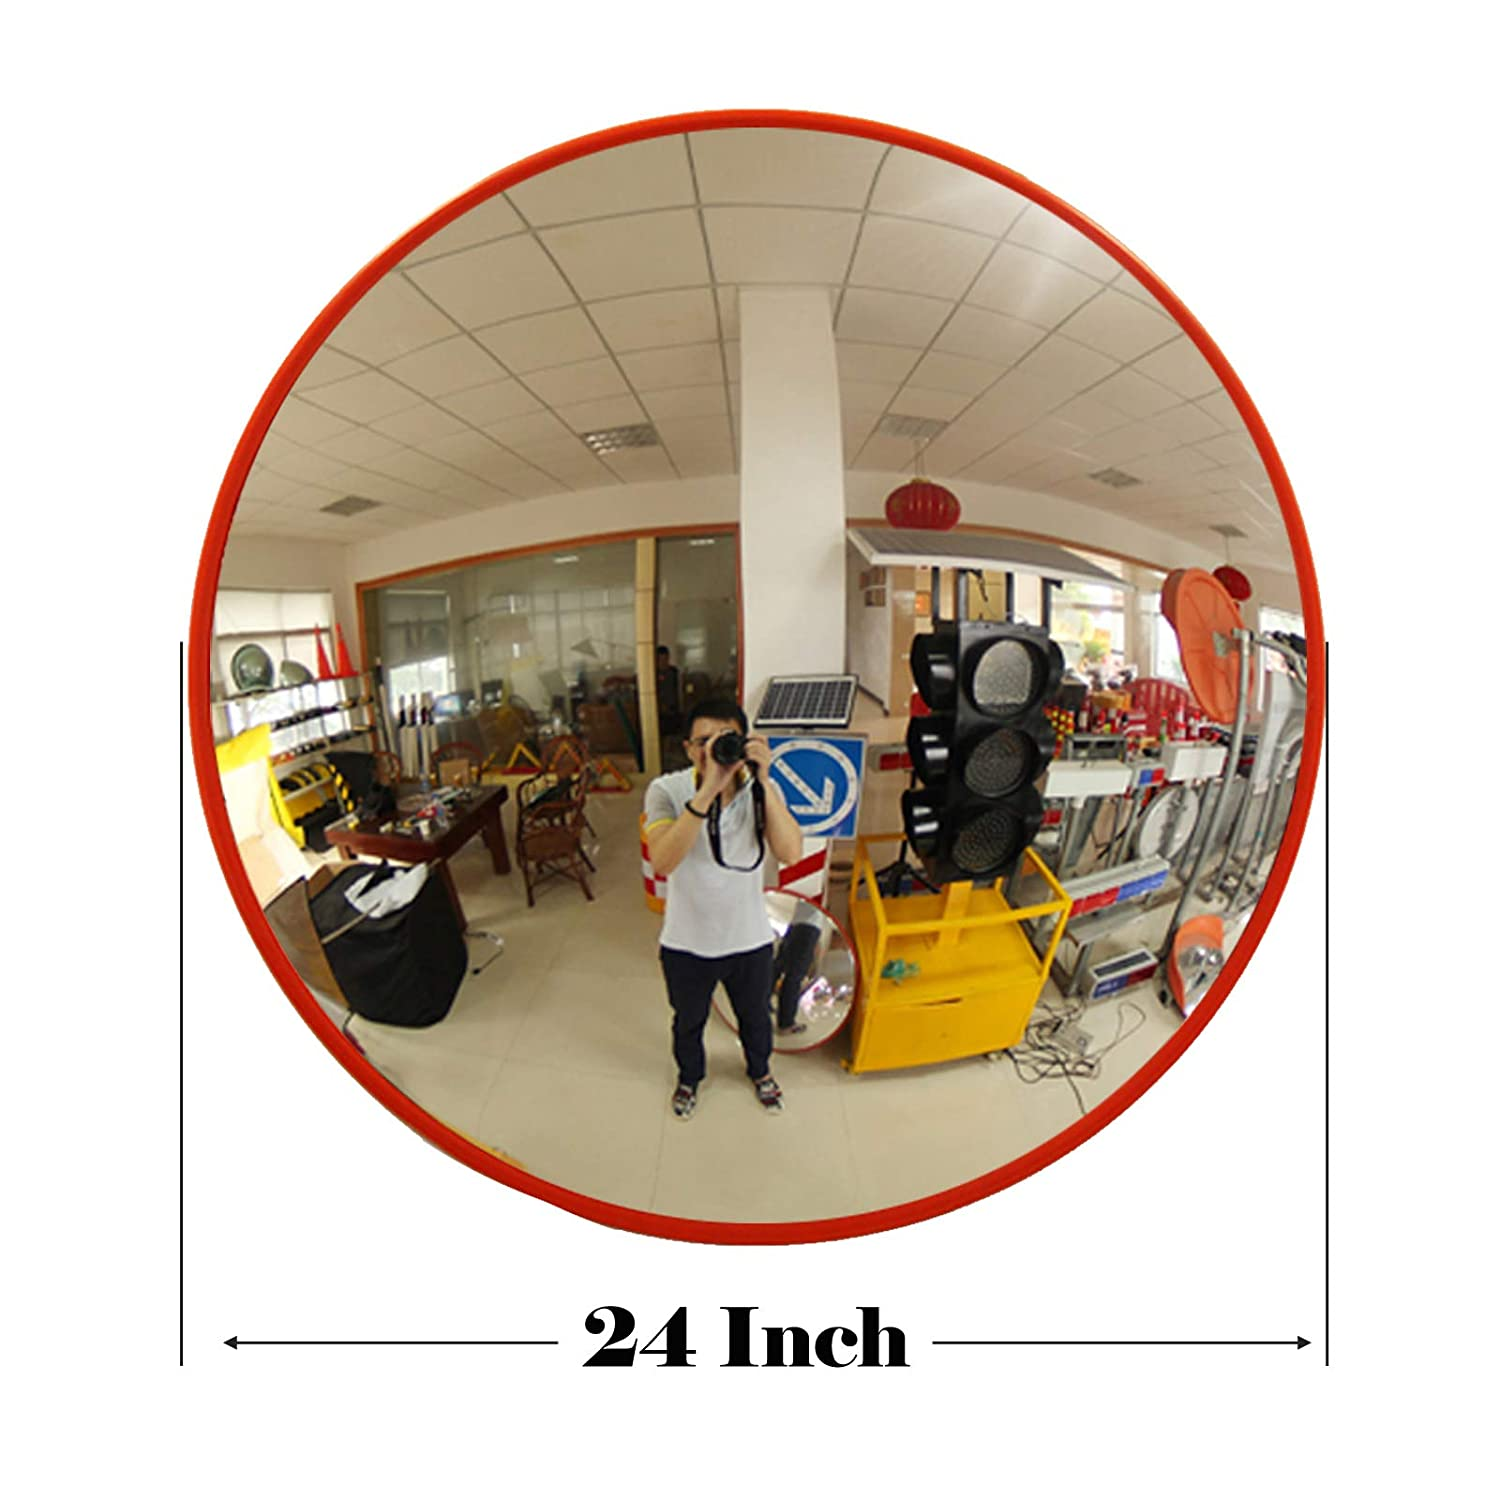 Home Driveway Convex Traffic Mirror 130 Degree Blind Spot Mirror Wide Angle Unbreakable Security Mirror For Road Safety,Garage Parking Alley Shop Security Hospital Car Park School 30CM